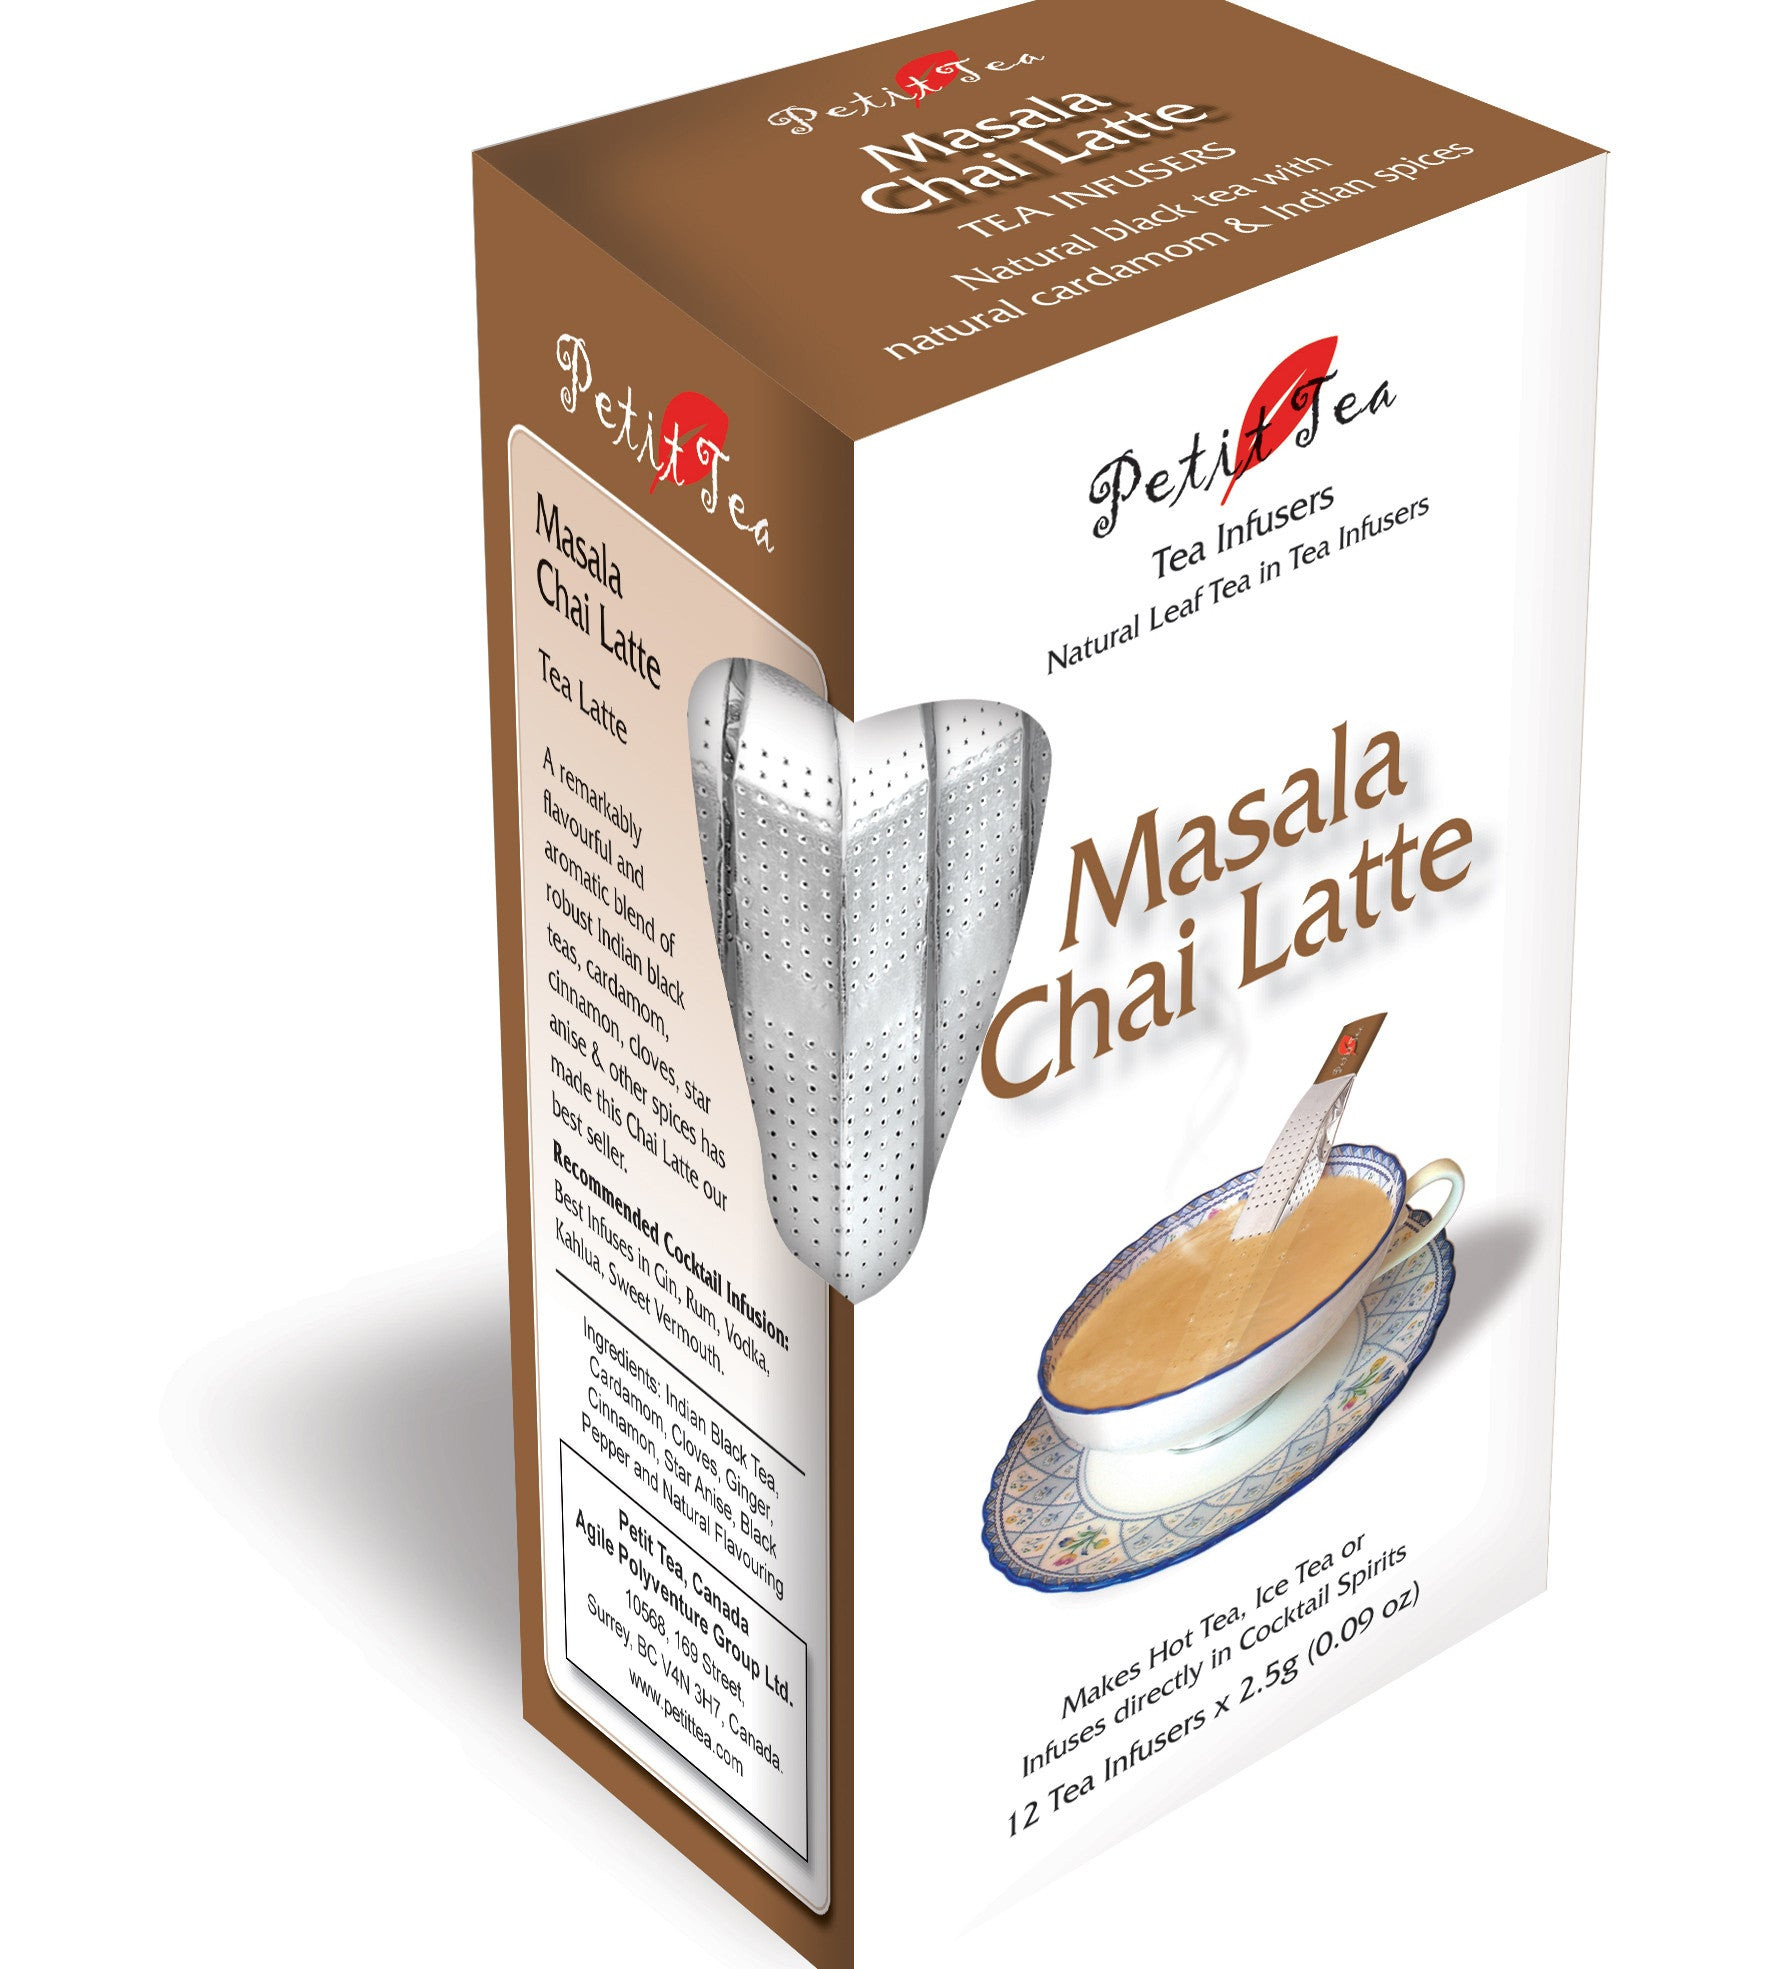 Masala Chai Latte Tea Infusers Natural Black Tea With Natural Cardamom & Indian Spices Cloves Cinnamon Pepper Petit Tea Tea Sticks Tea Infuser Tea Stick Loose Leaf Tea Natural Whole Leaf Tea In Tea Infusers Makes Hot Tea Iced Tea or Infuses Directly into Cocktail Sp